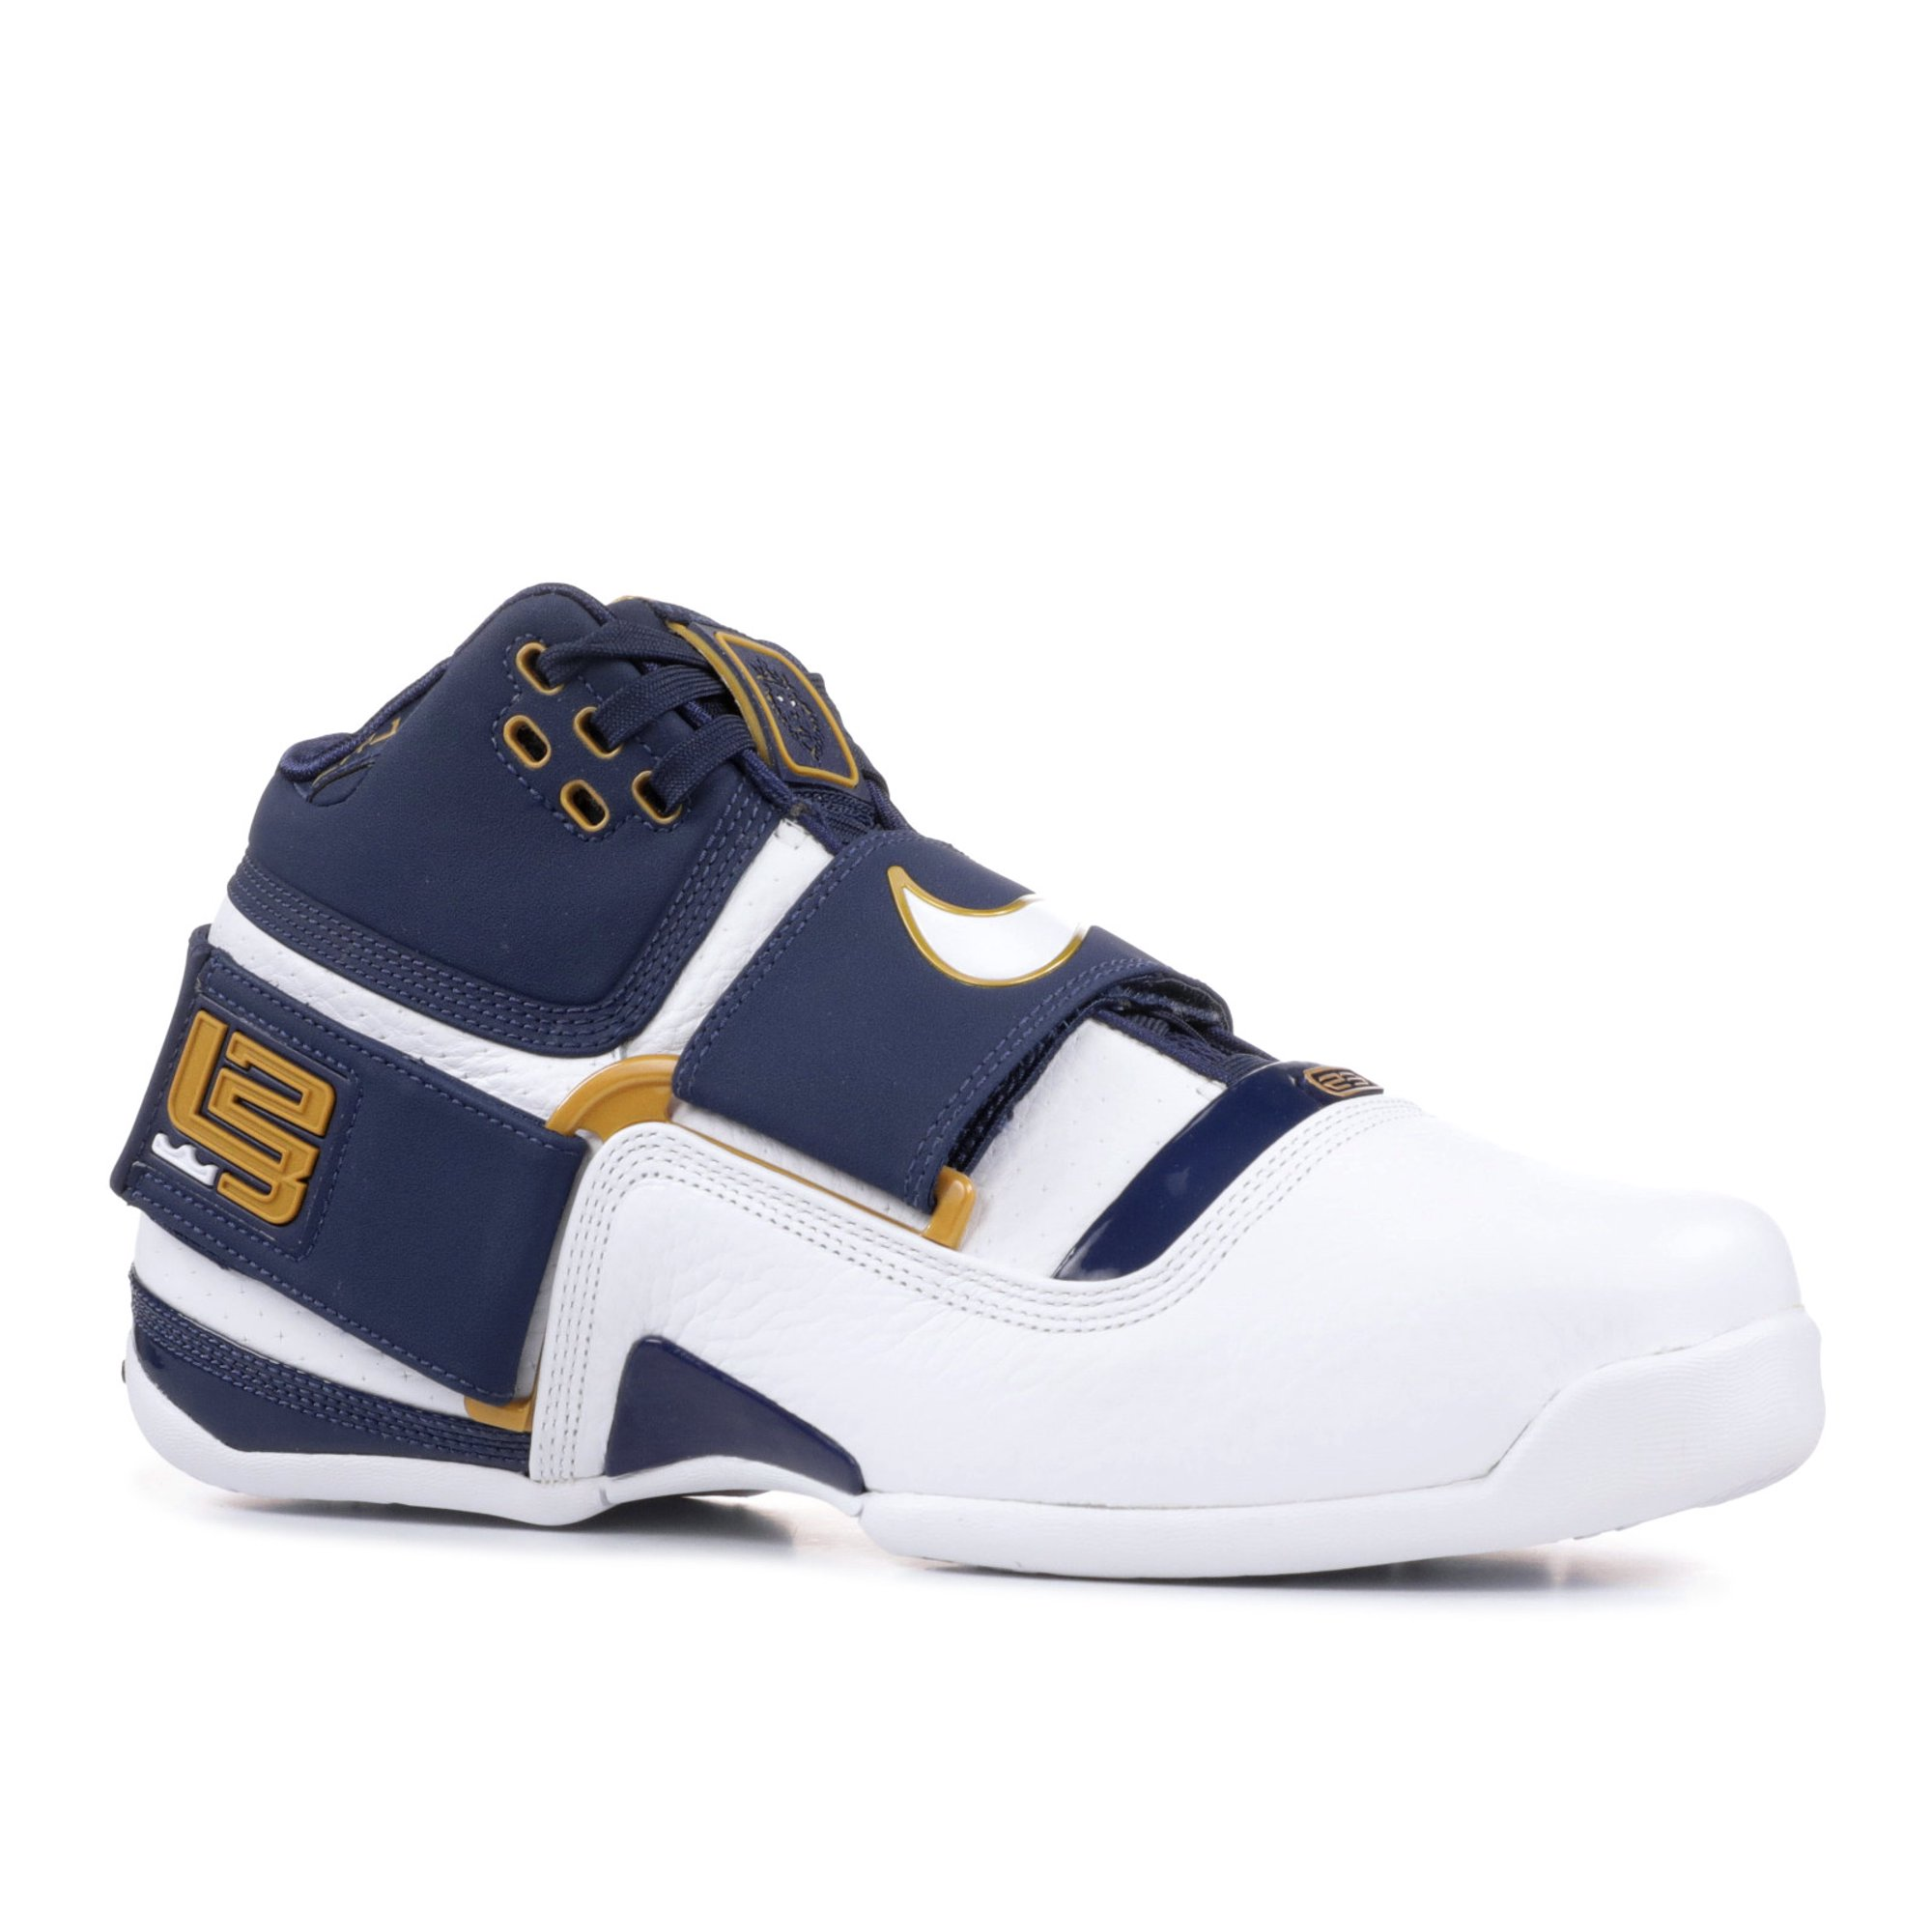 reputable site ad63e b4d9b Nike - Men - Zoom Lebron Soldier 1 Ct 16 Qs '25 Straight / Think 16' -  Ao2088-400 - Size 11.5